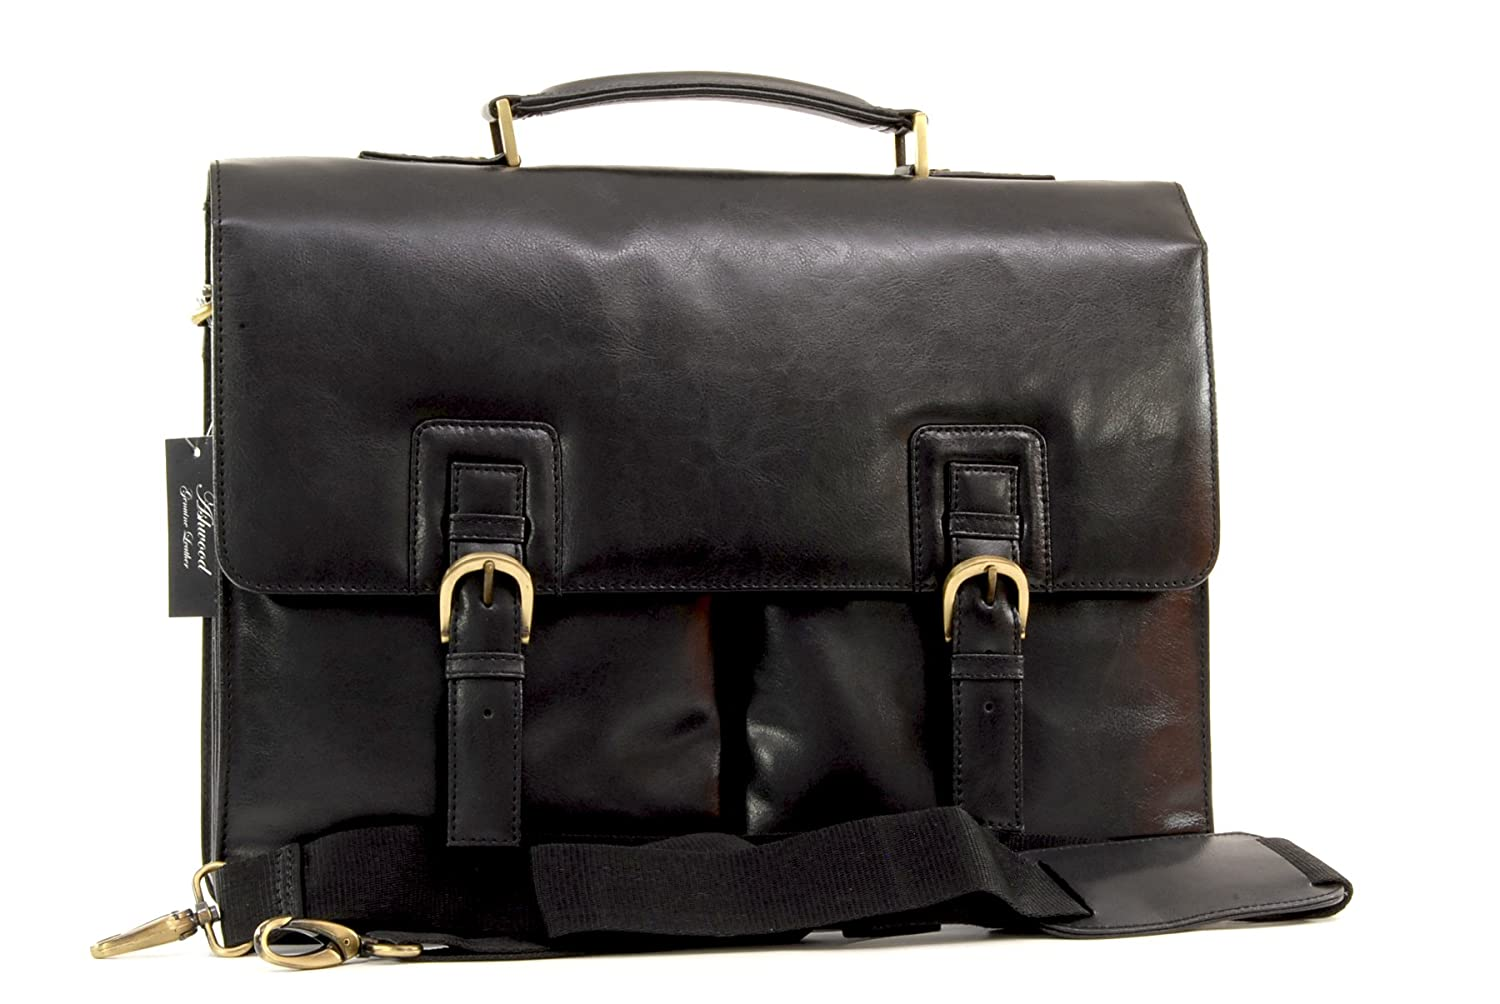 Ashwood Heavy Duty Leather Briefcase/Laptop Bag - Gareth Ashwood Leather